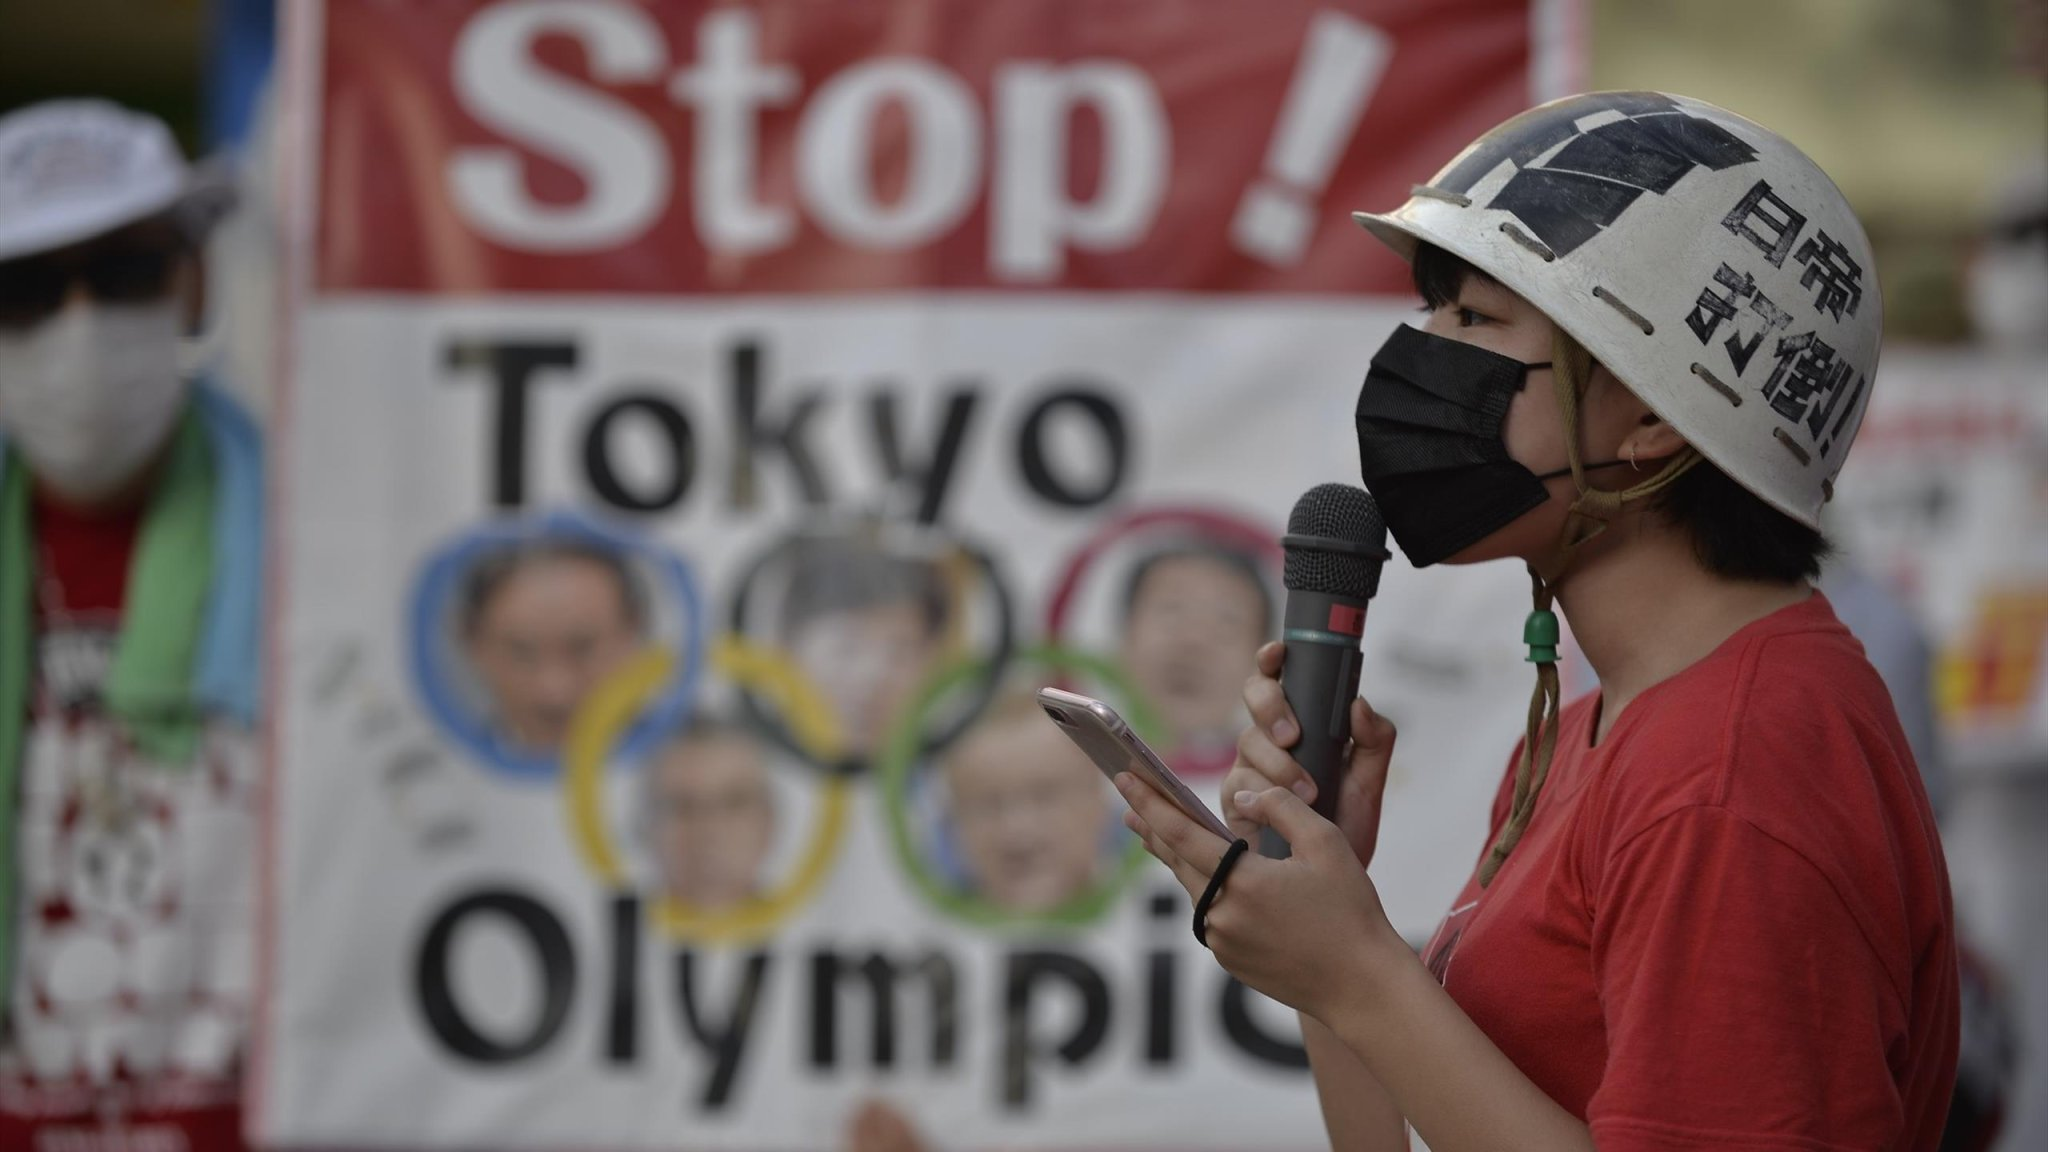 Anti-Olympic protests outside National Stadium 'audible' during Opening Ceremony